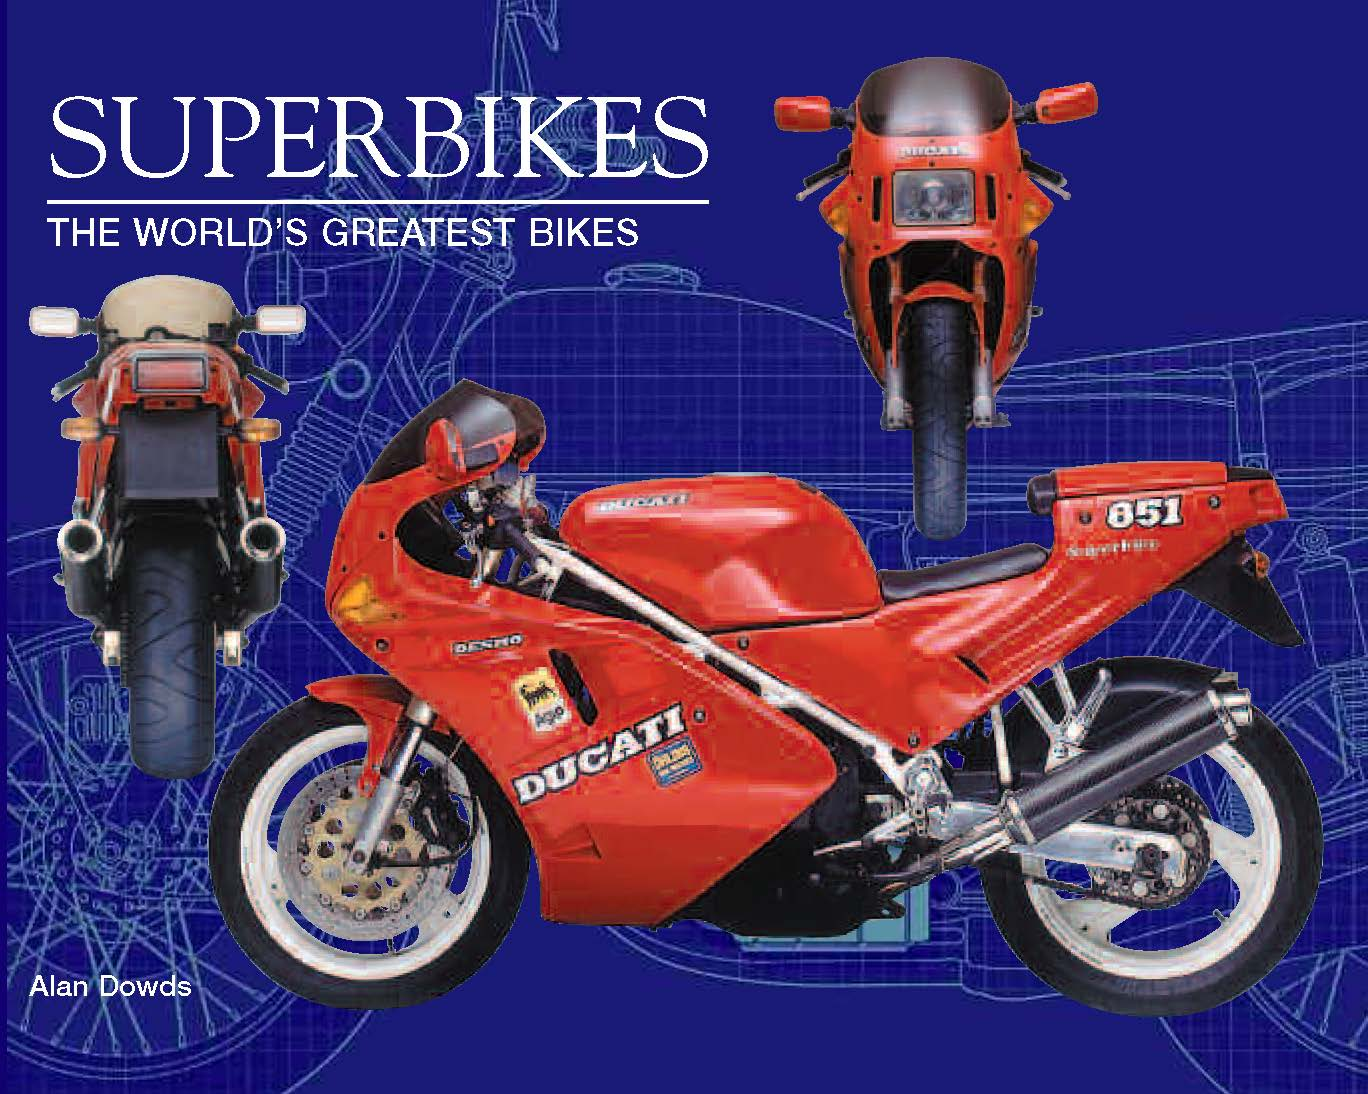 Superbikes: Landscape Pocket Guides